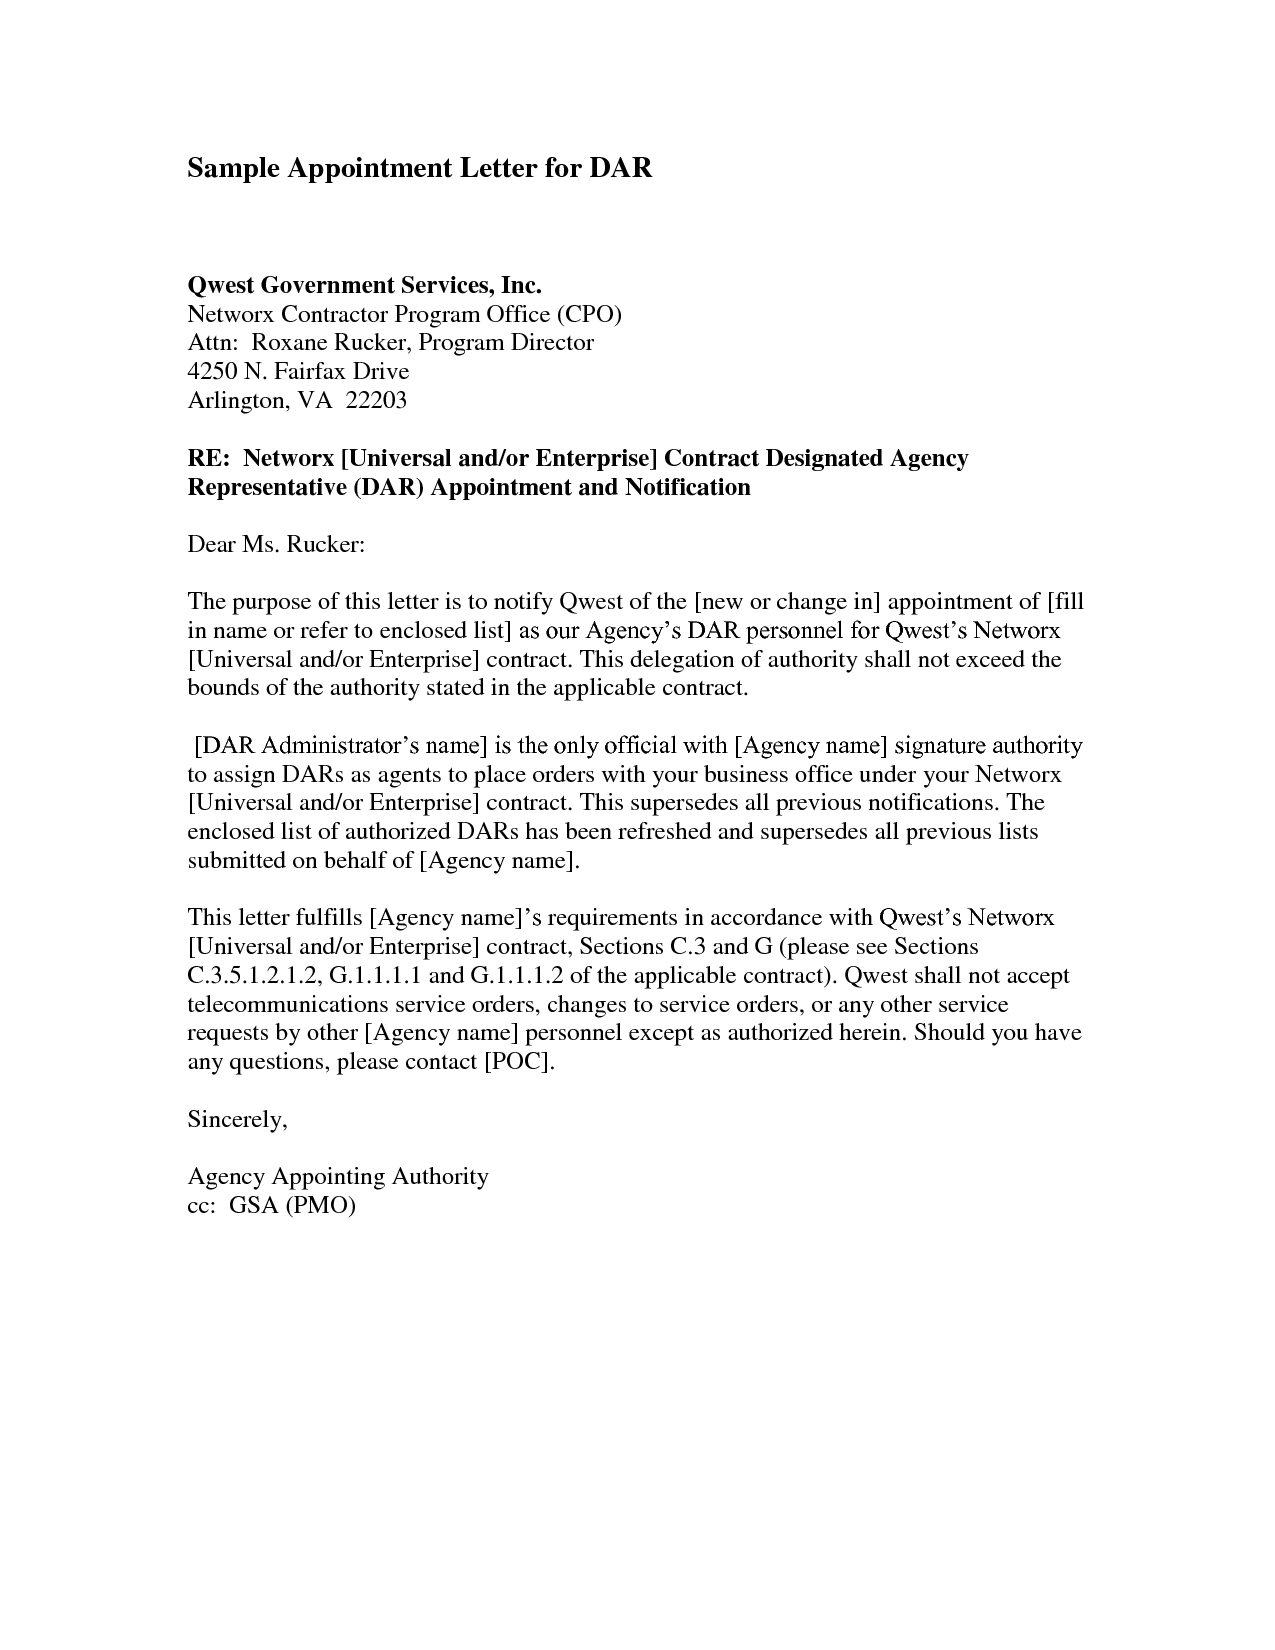 Formal Petition Letter Template - Trustee Appointment Letter Director Trustee is Appointed or